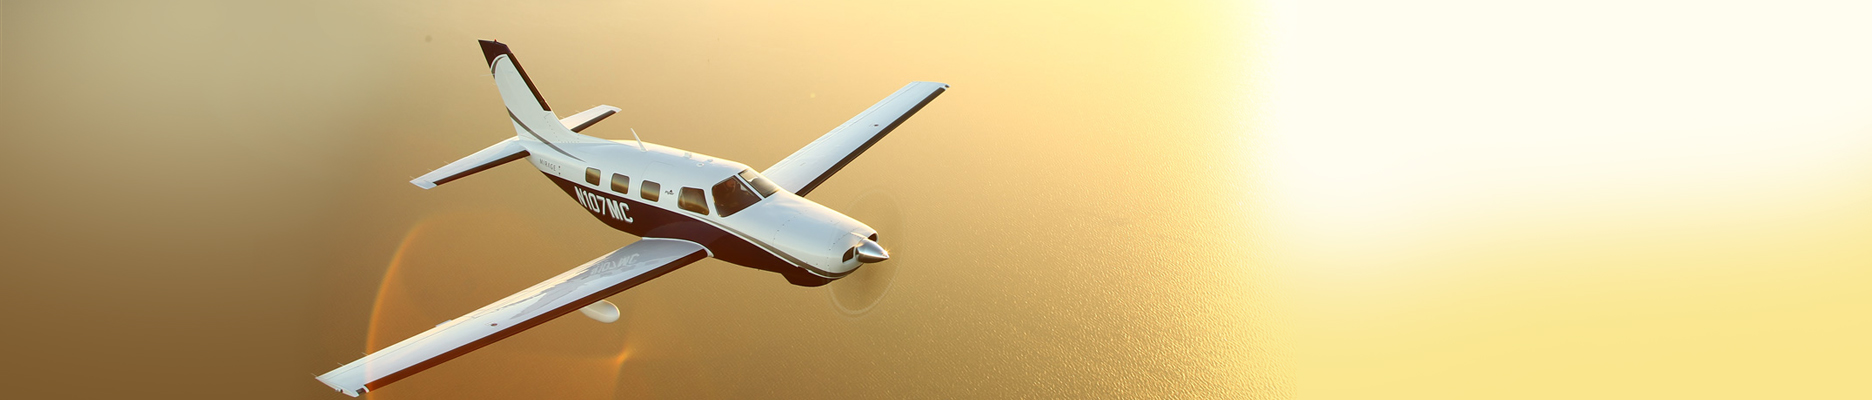 Plane flying above golden ocean